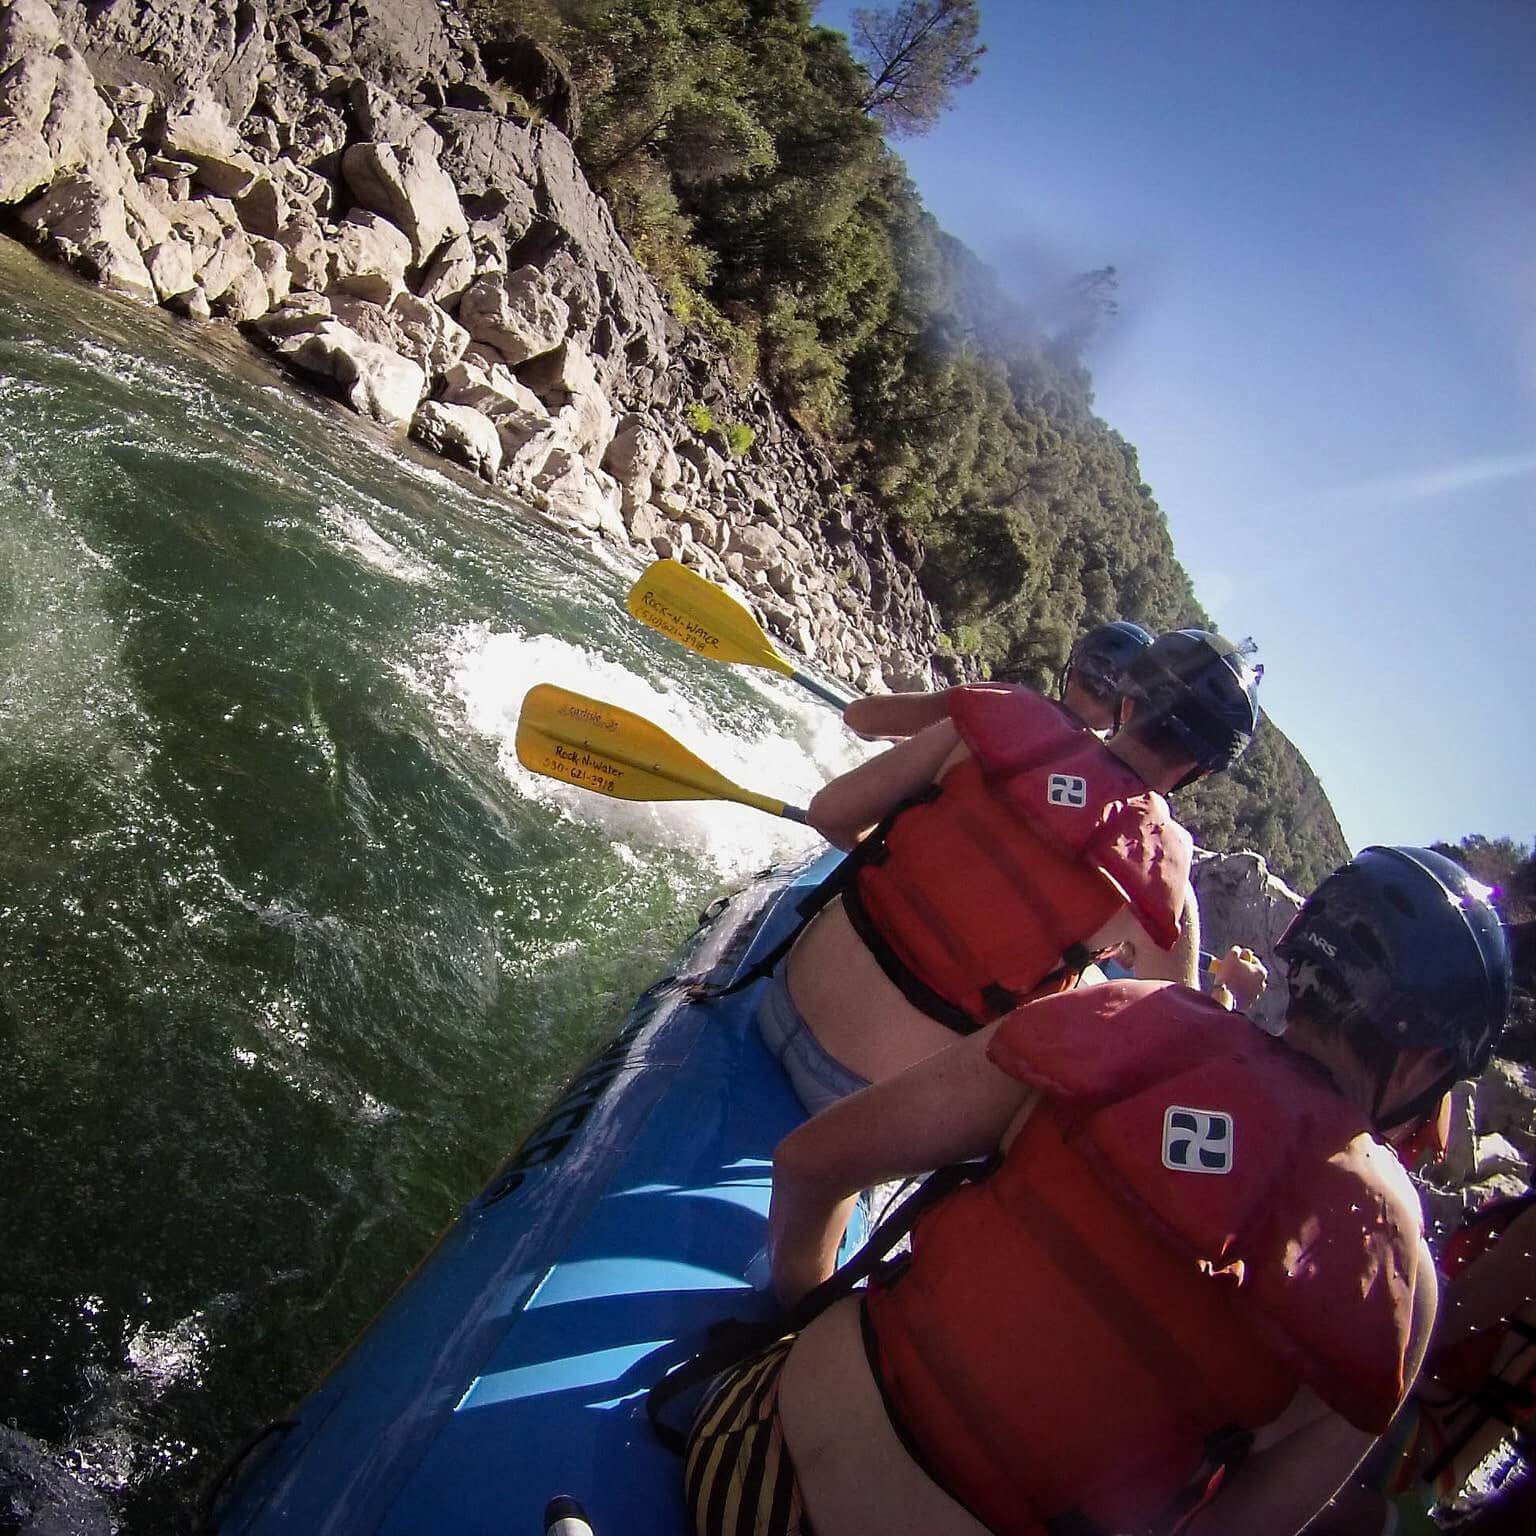 Point of view in blue whitewater raft on river